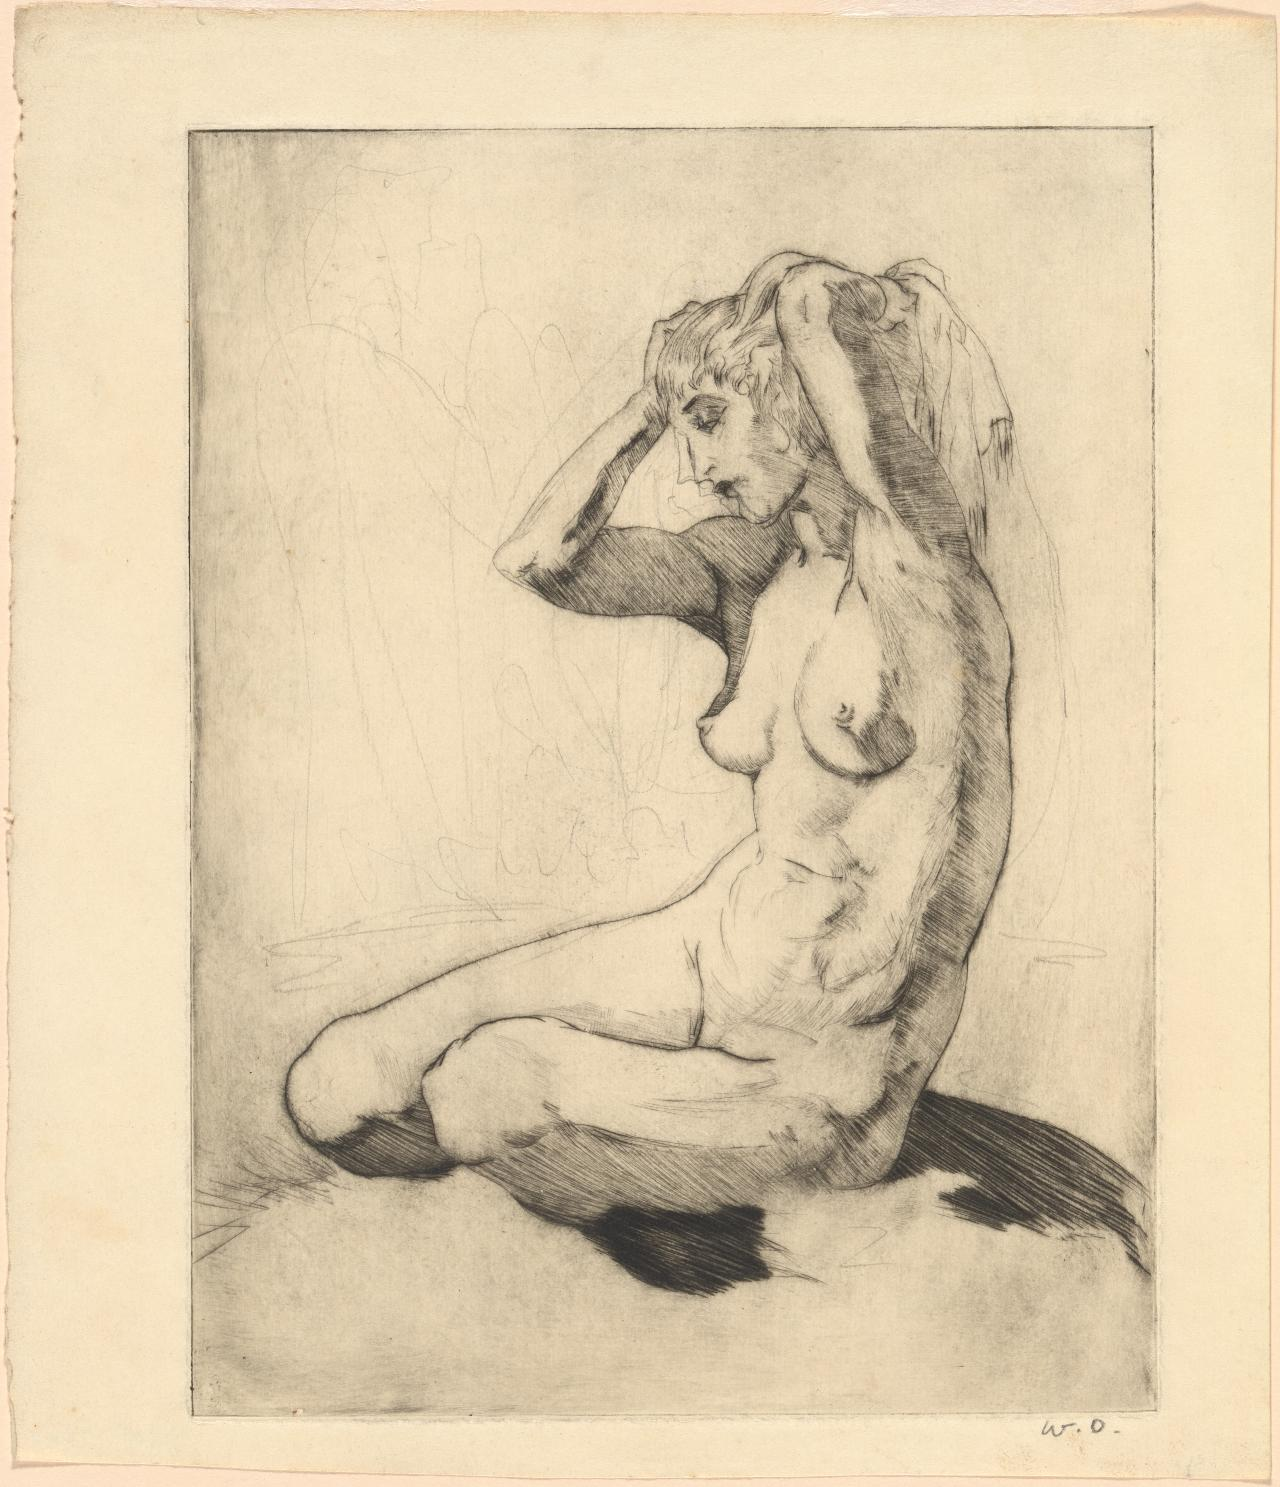 (Untitled) (Seated nude with knees bent and arms raised)